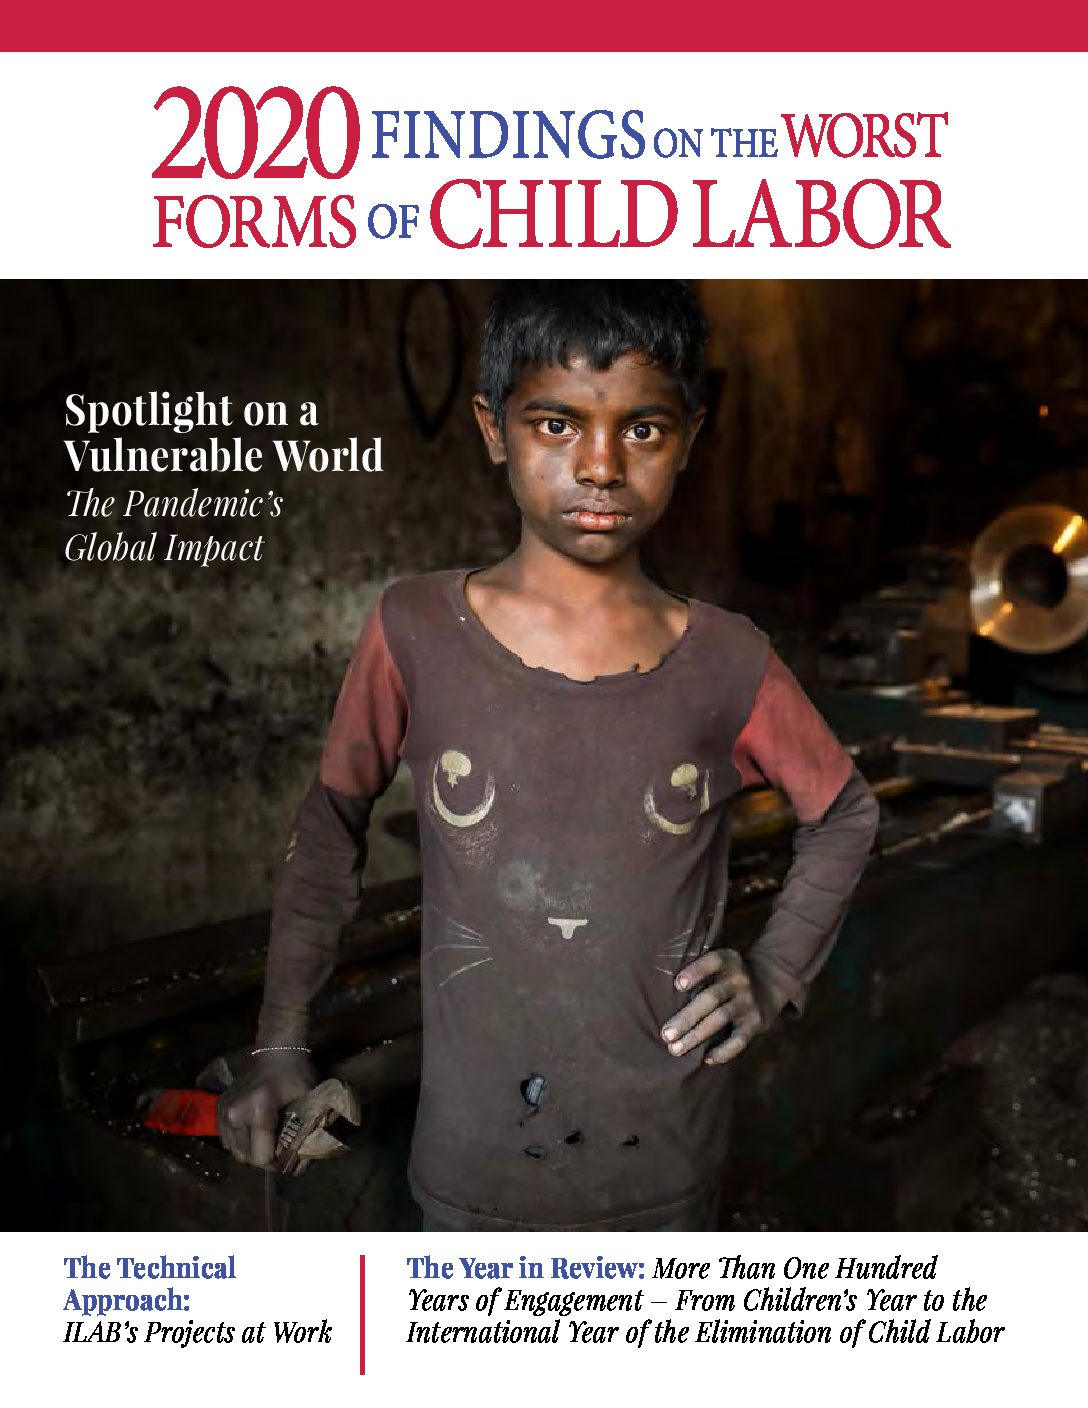 2020 Findings on the Worst Forms of Child Labor